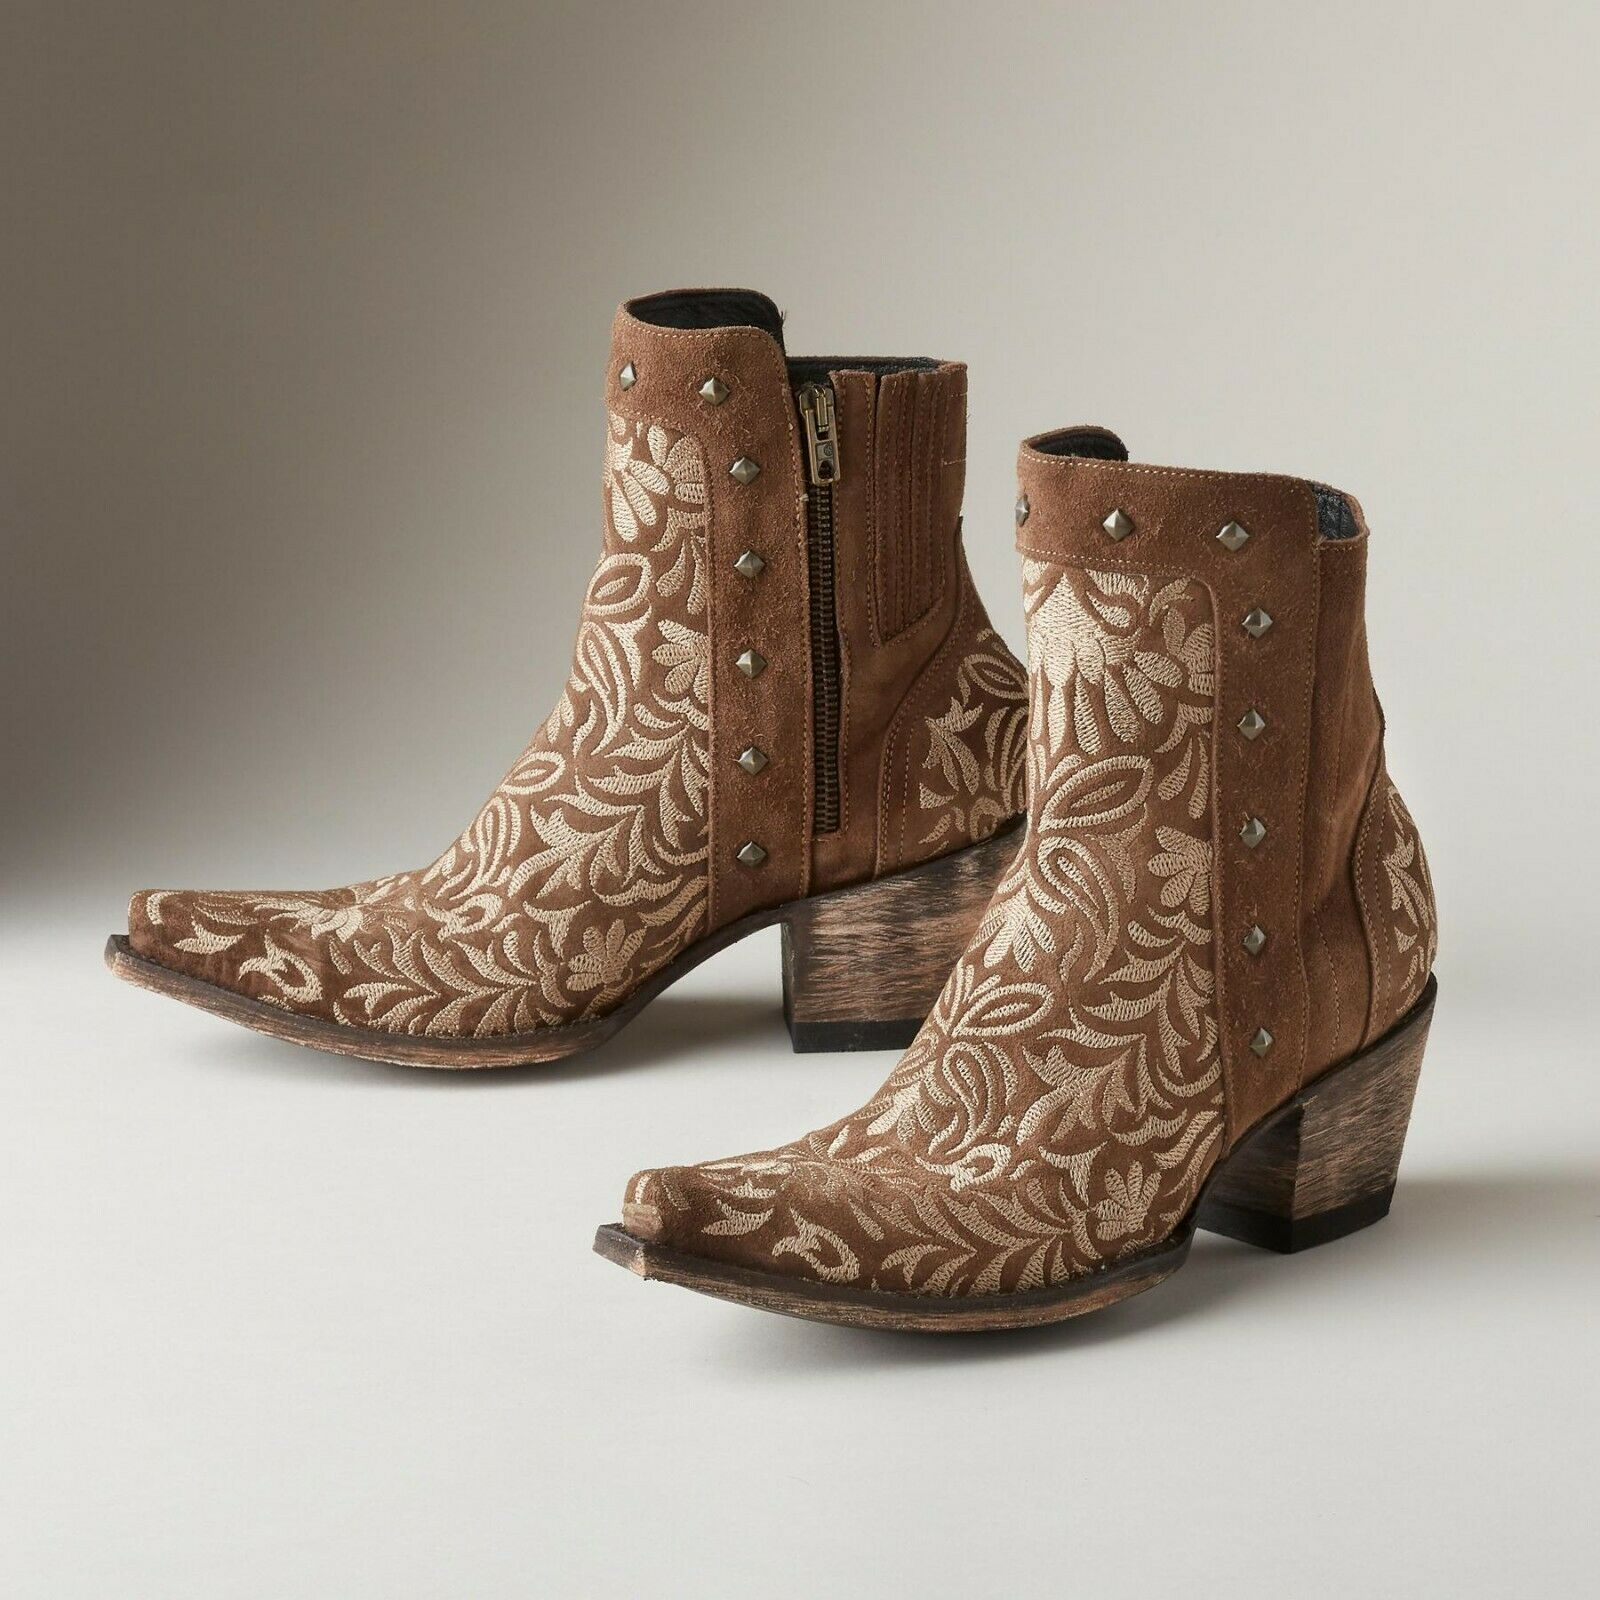 New Old Gringo Women's Wink Jewelry 7  Ankle Western Boots Brown BL 30491-1